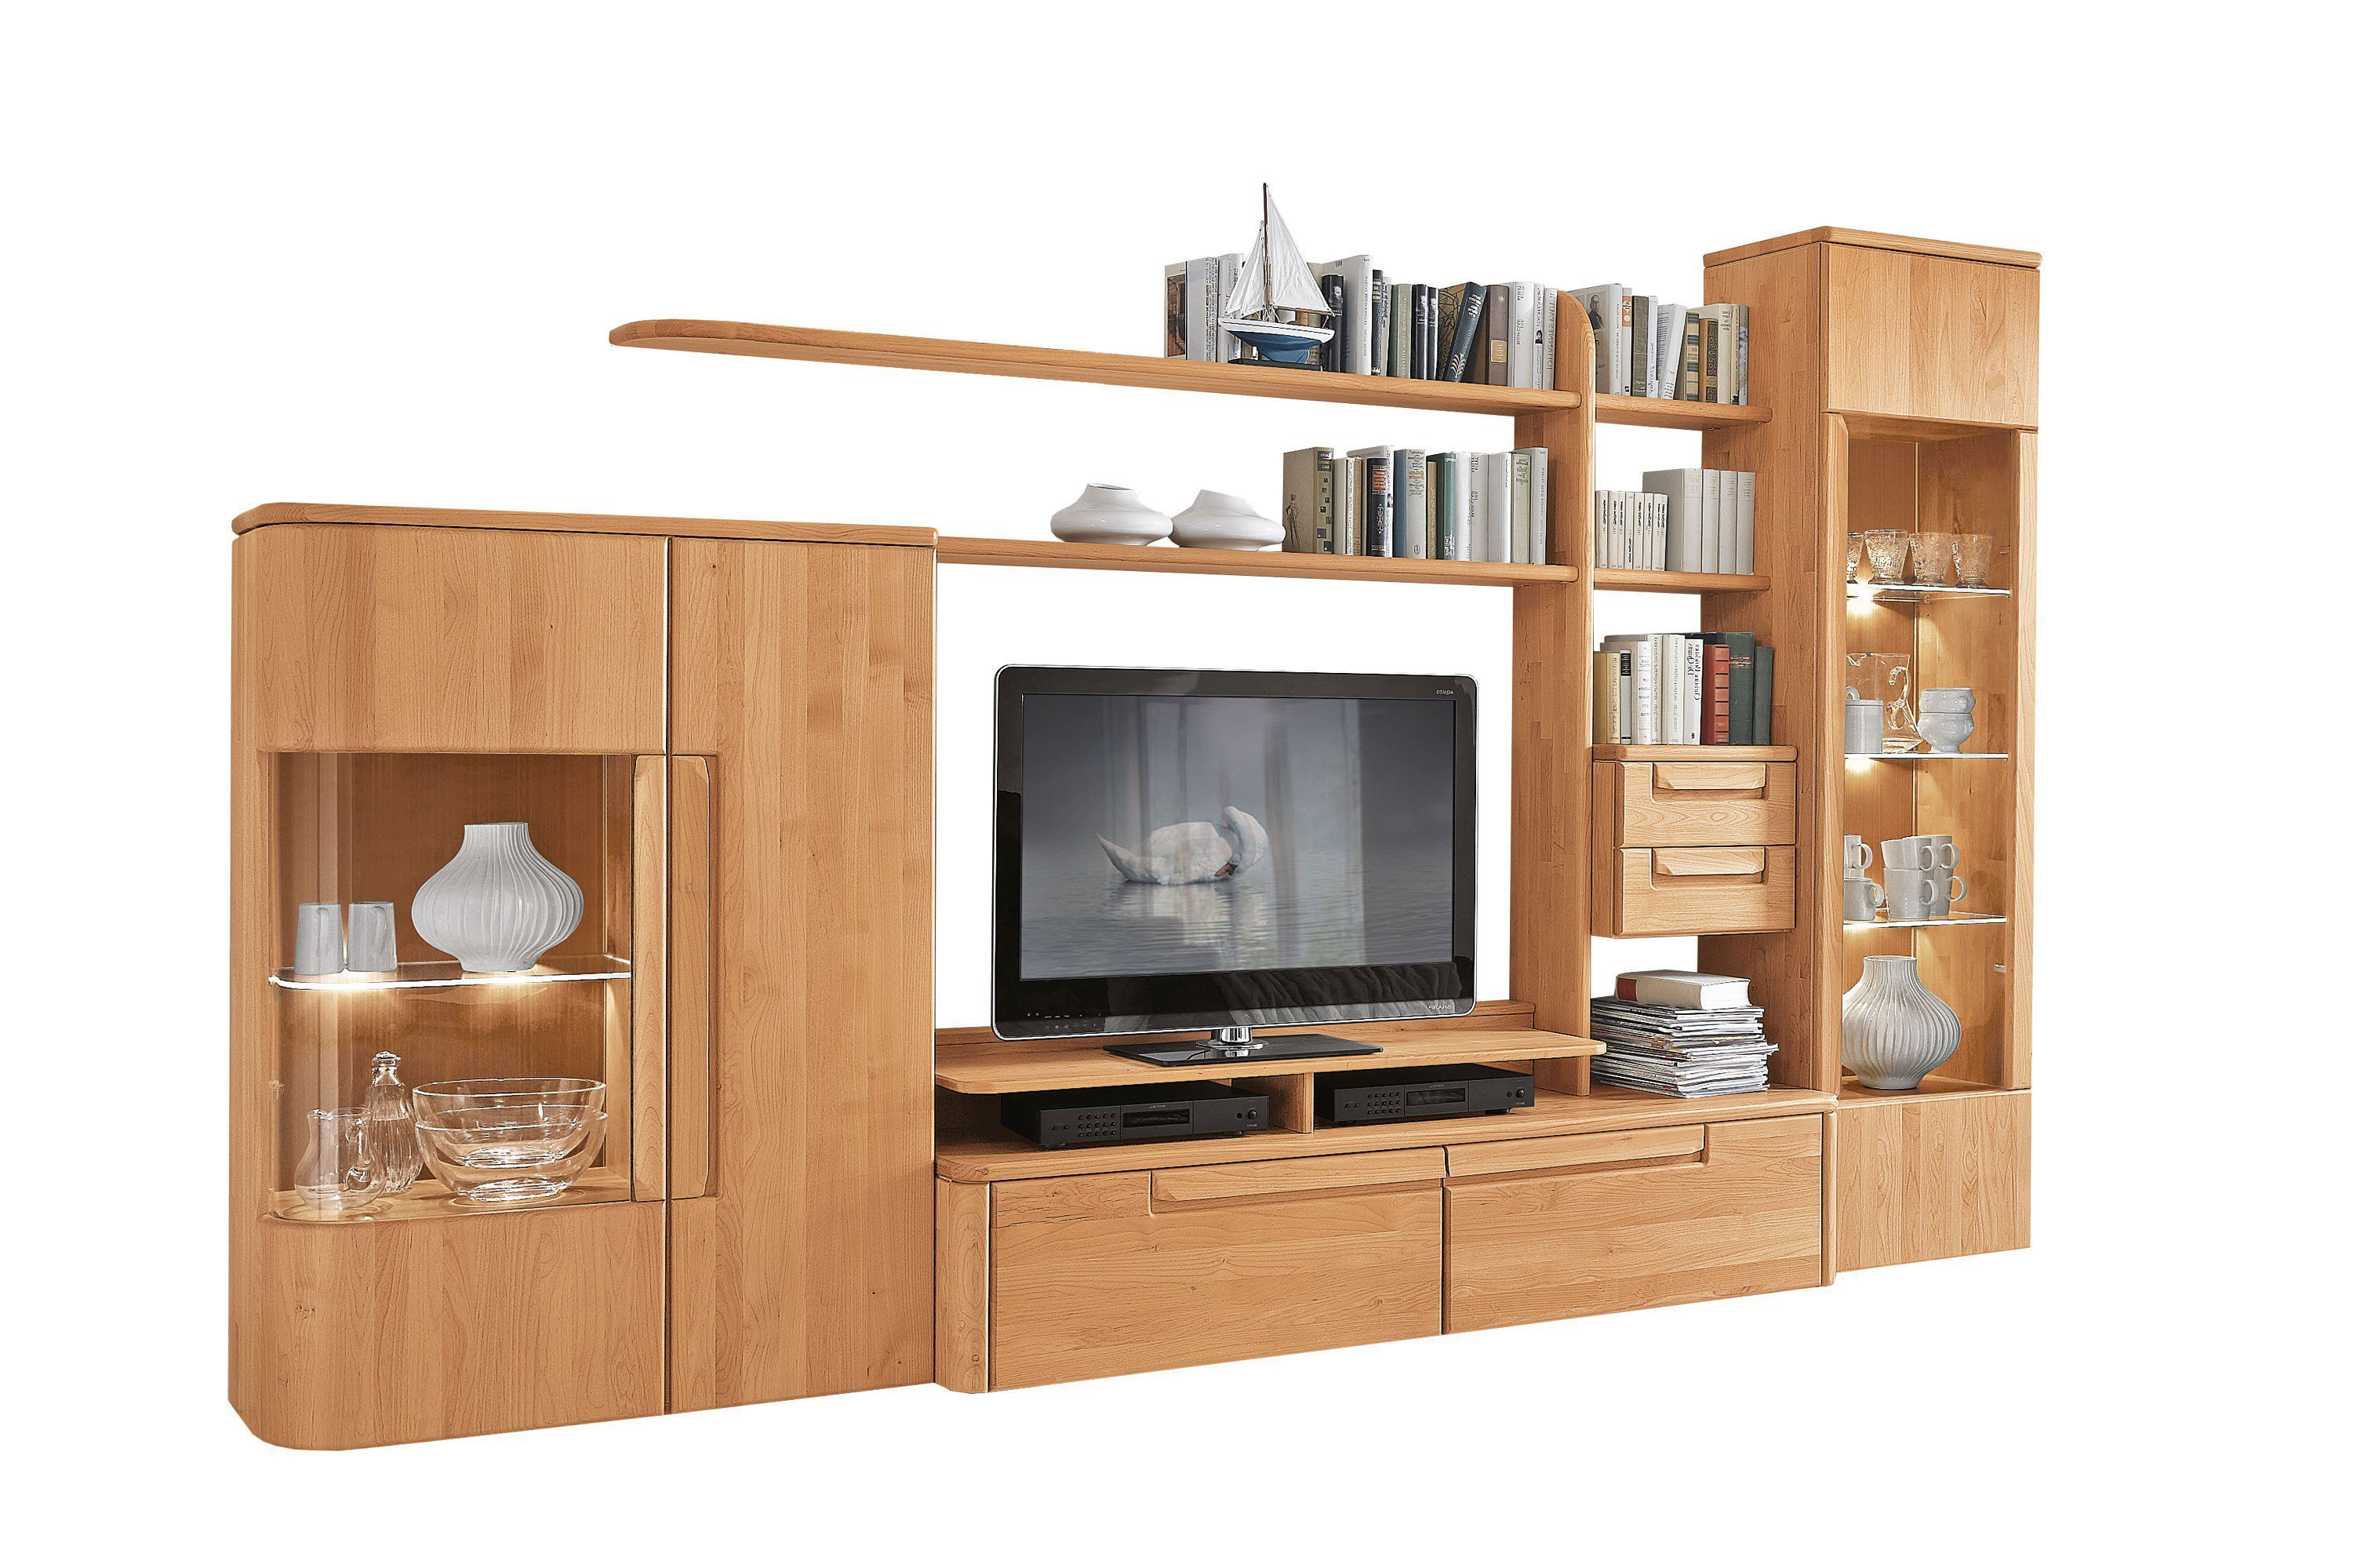 w stmann wohnwand cantana 3000 erle massiv m bel letz ihr online shop. Black Bedroom Furniture Sets. Home Design Ideas